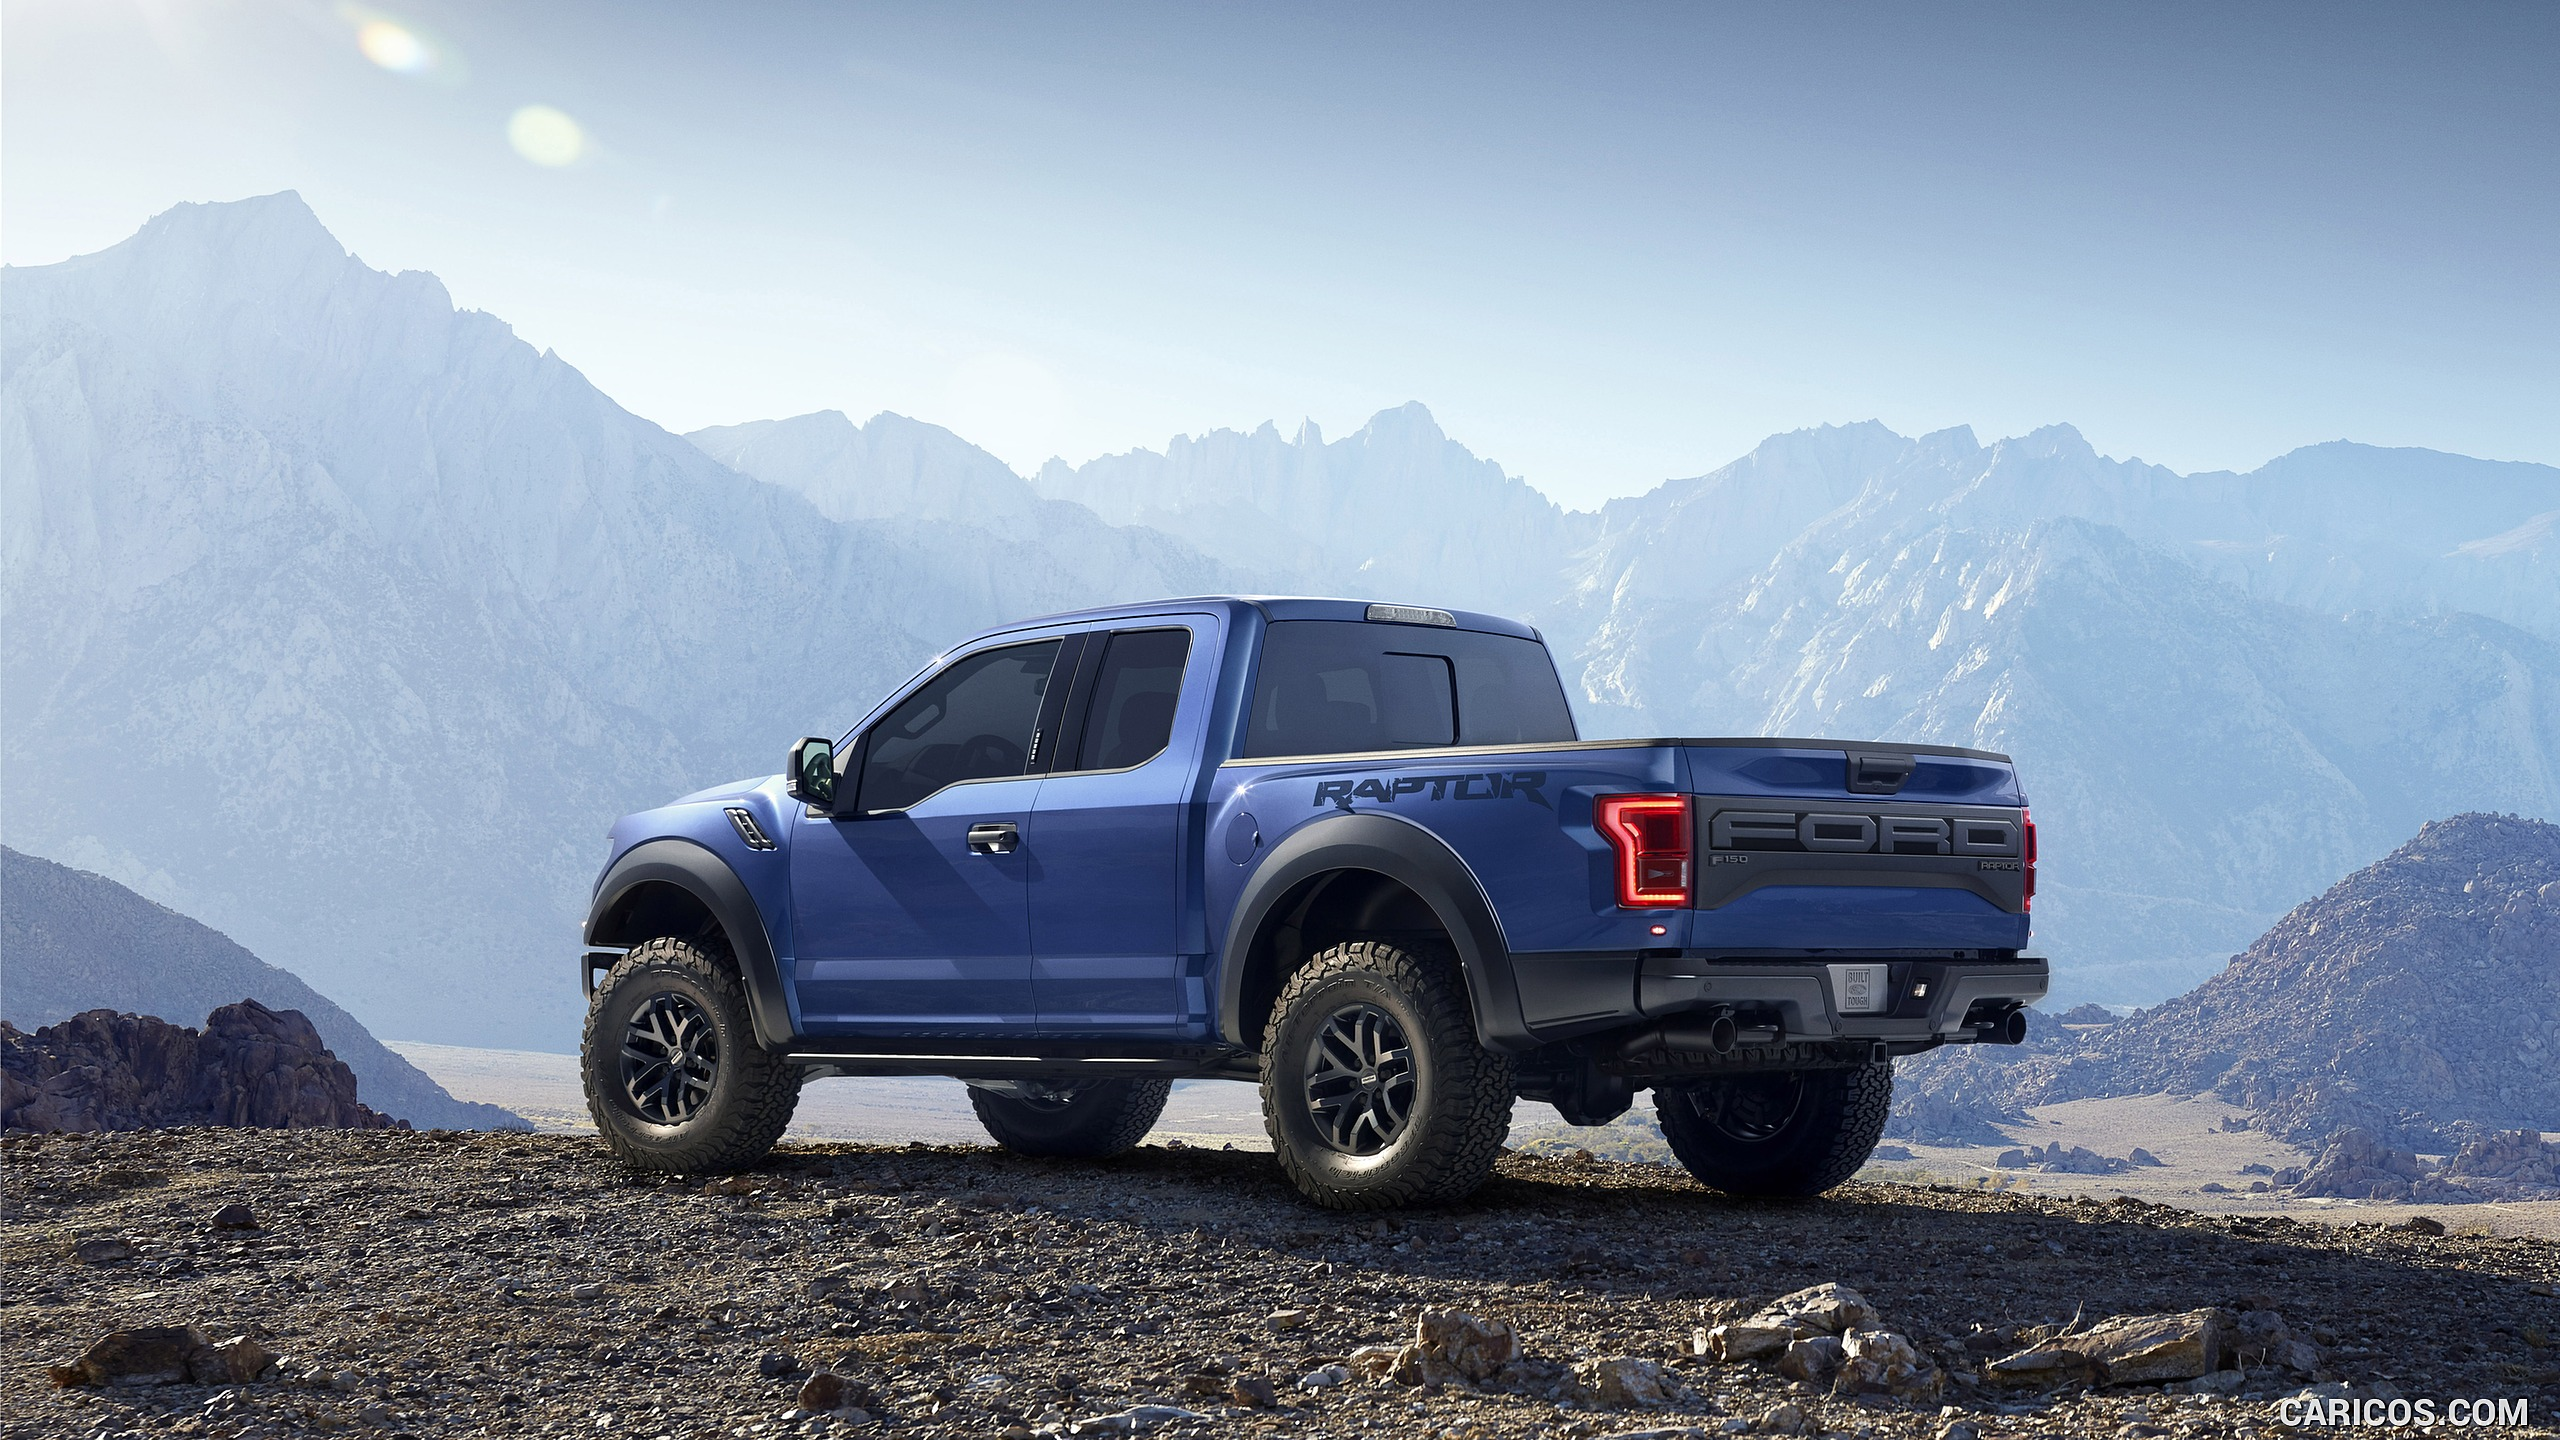 Ford Raptor Wallpapers (28 images) - DodoWallpaper